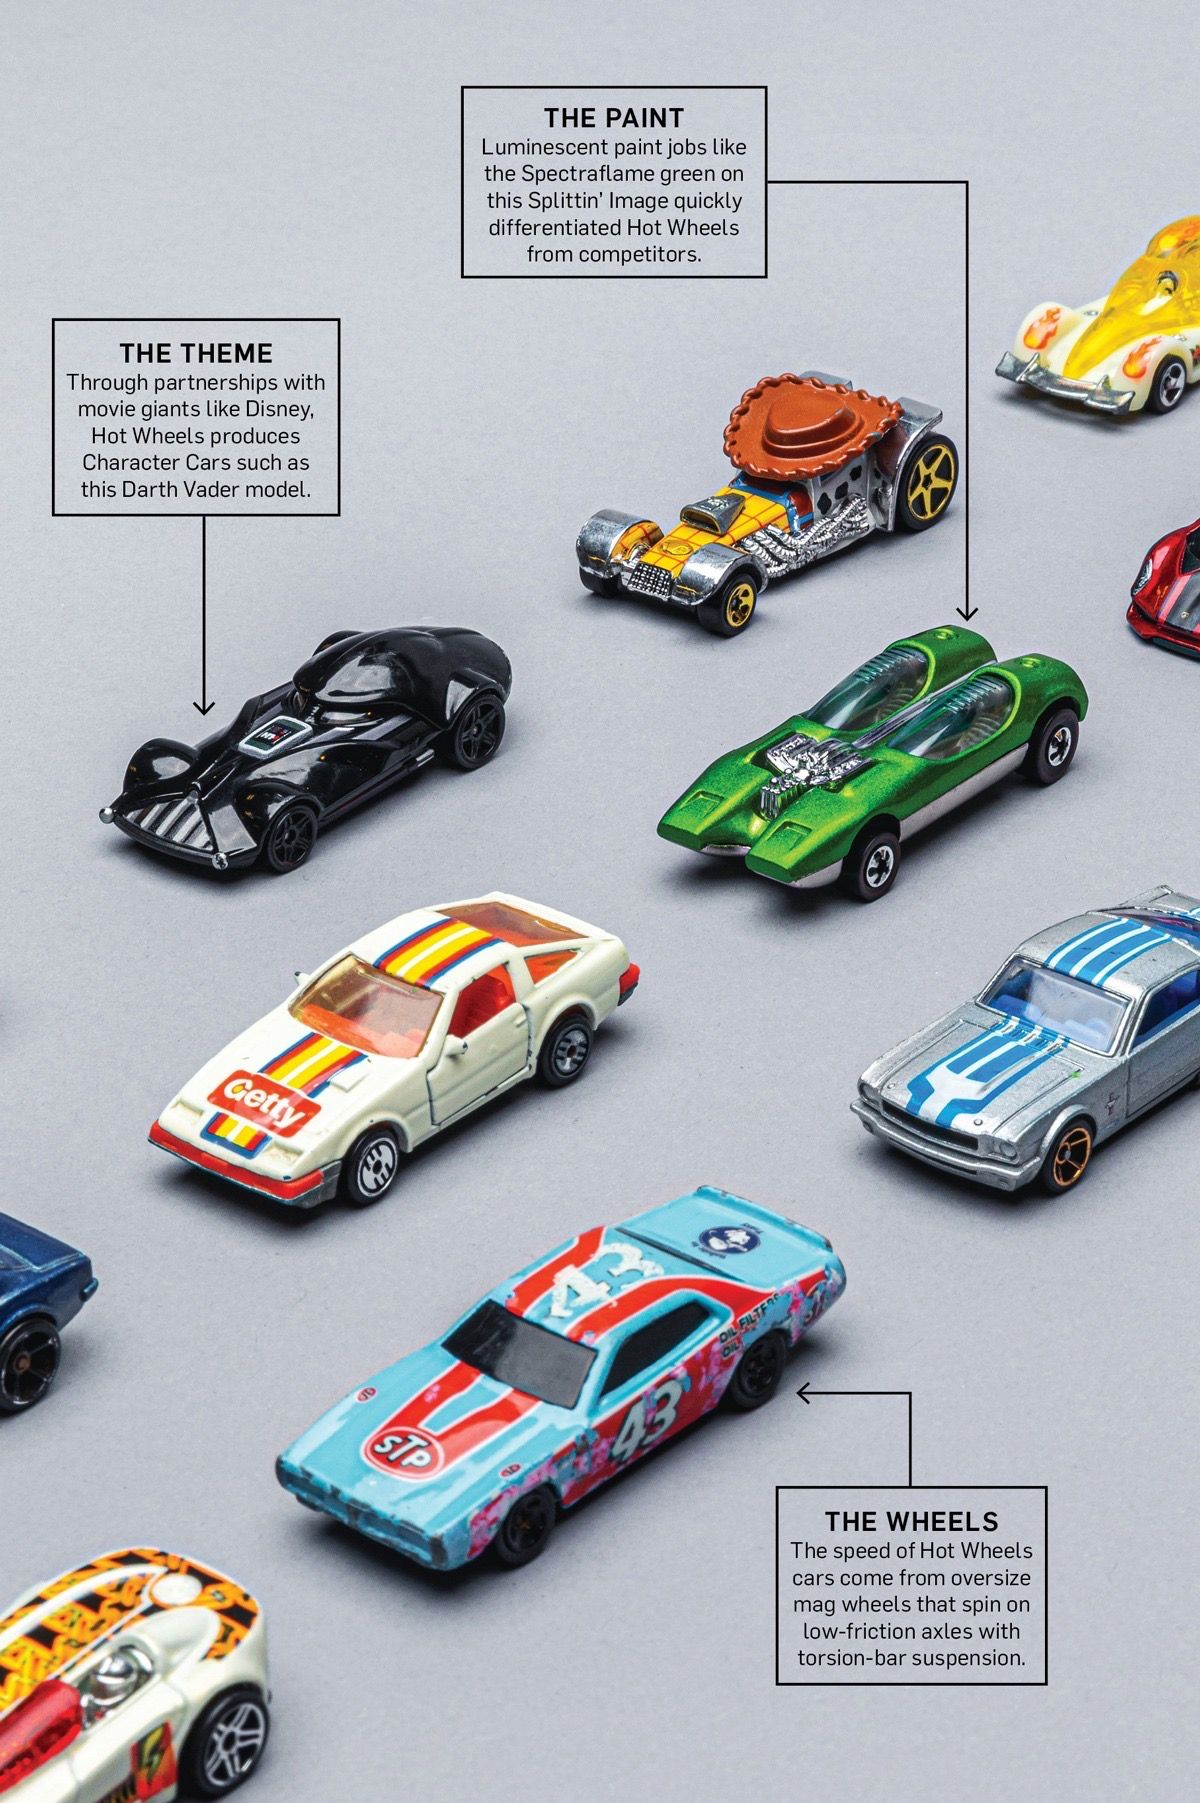 Pin by Steve Parys on Cool stuff in 2020 Hot wheels cars